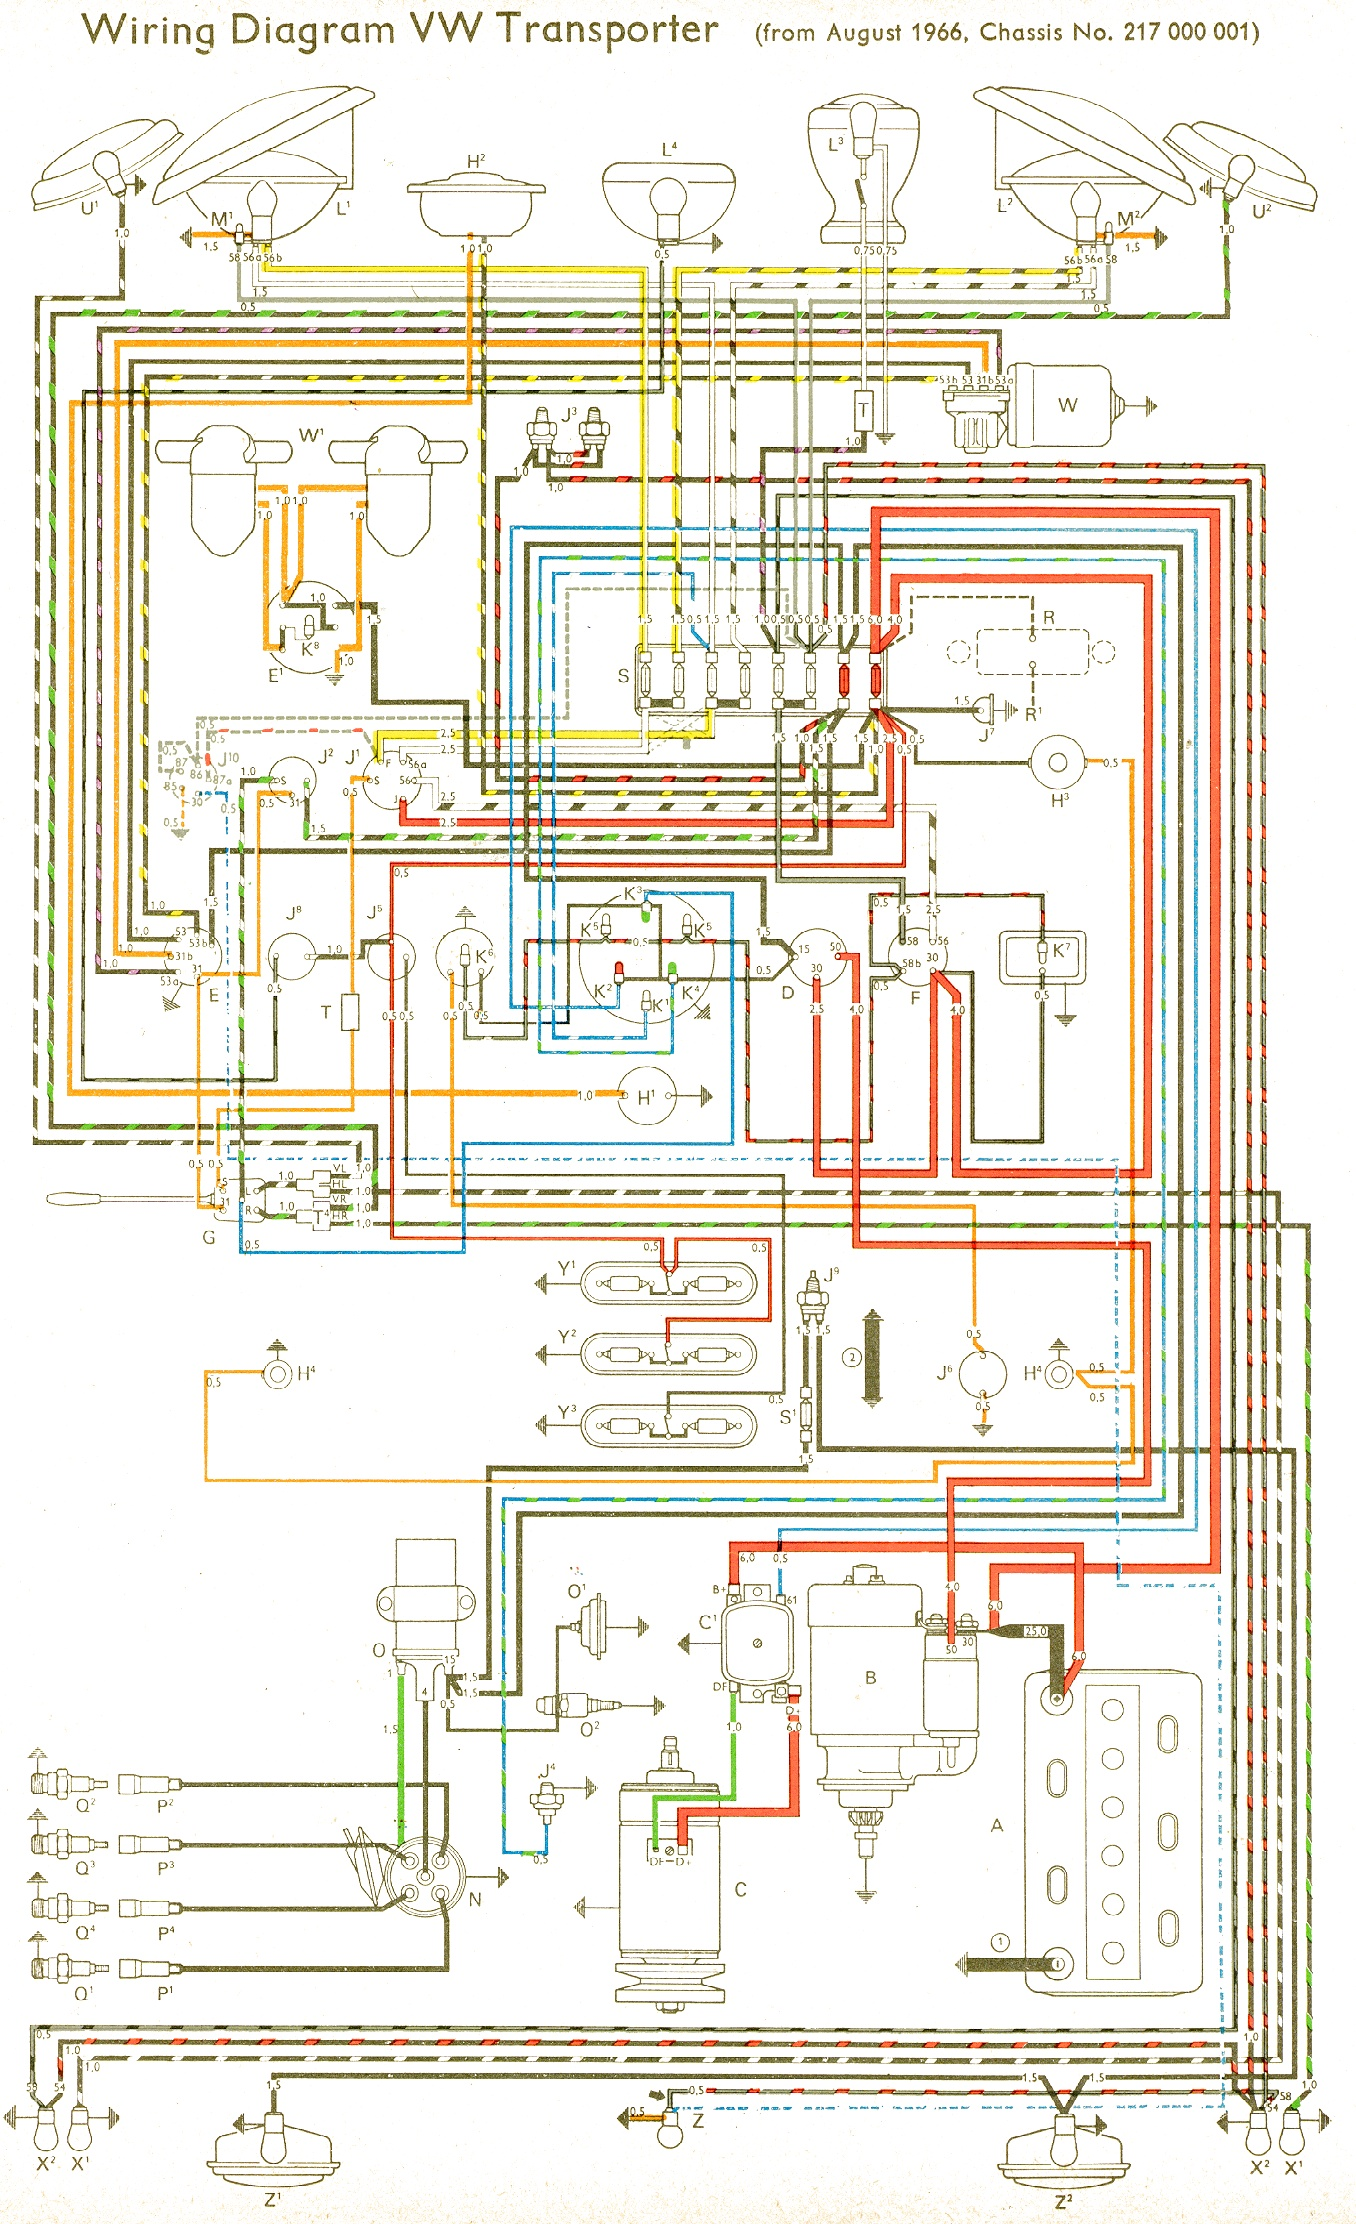 vintagebus com vw bus (and other) wiring diagrams 1976 VW Bus Wiring Schematic